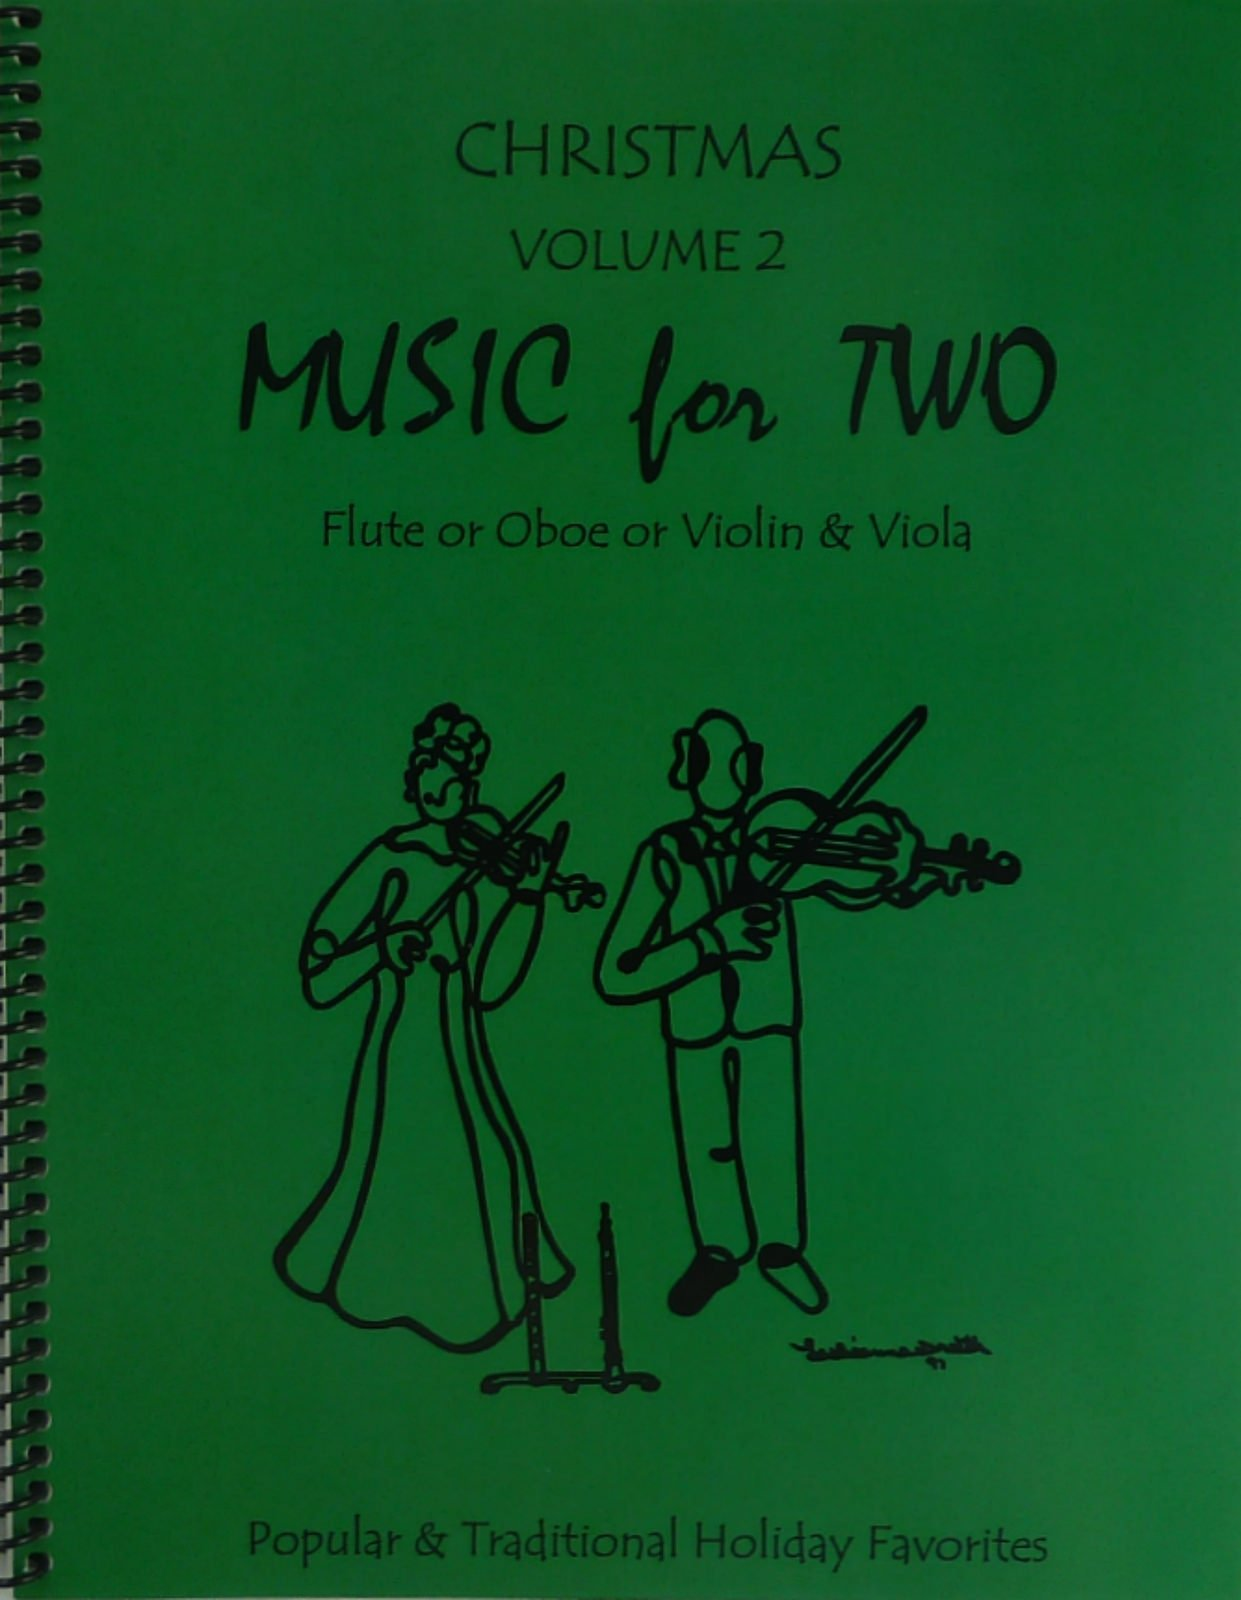 Music for Two, Christmas Volume 2 for Flute or Oboe or Violin & Viola